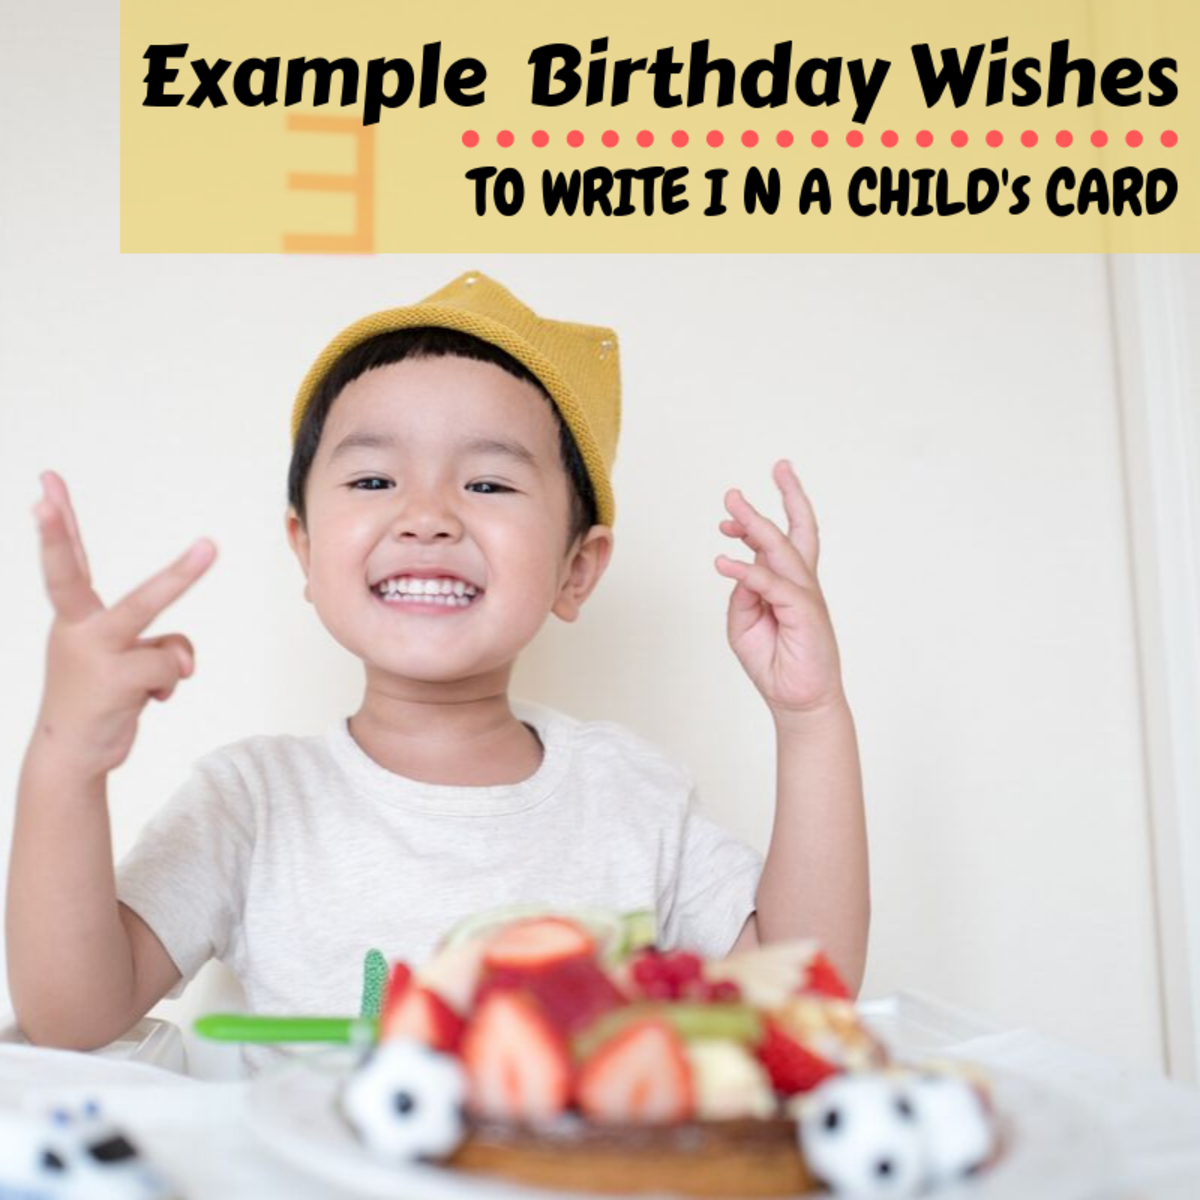 If you're struggling to figure out what to write in a child's birthday card, check out some of these example messages for ideas and inspiration.